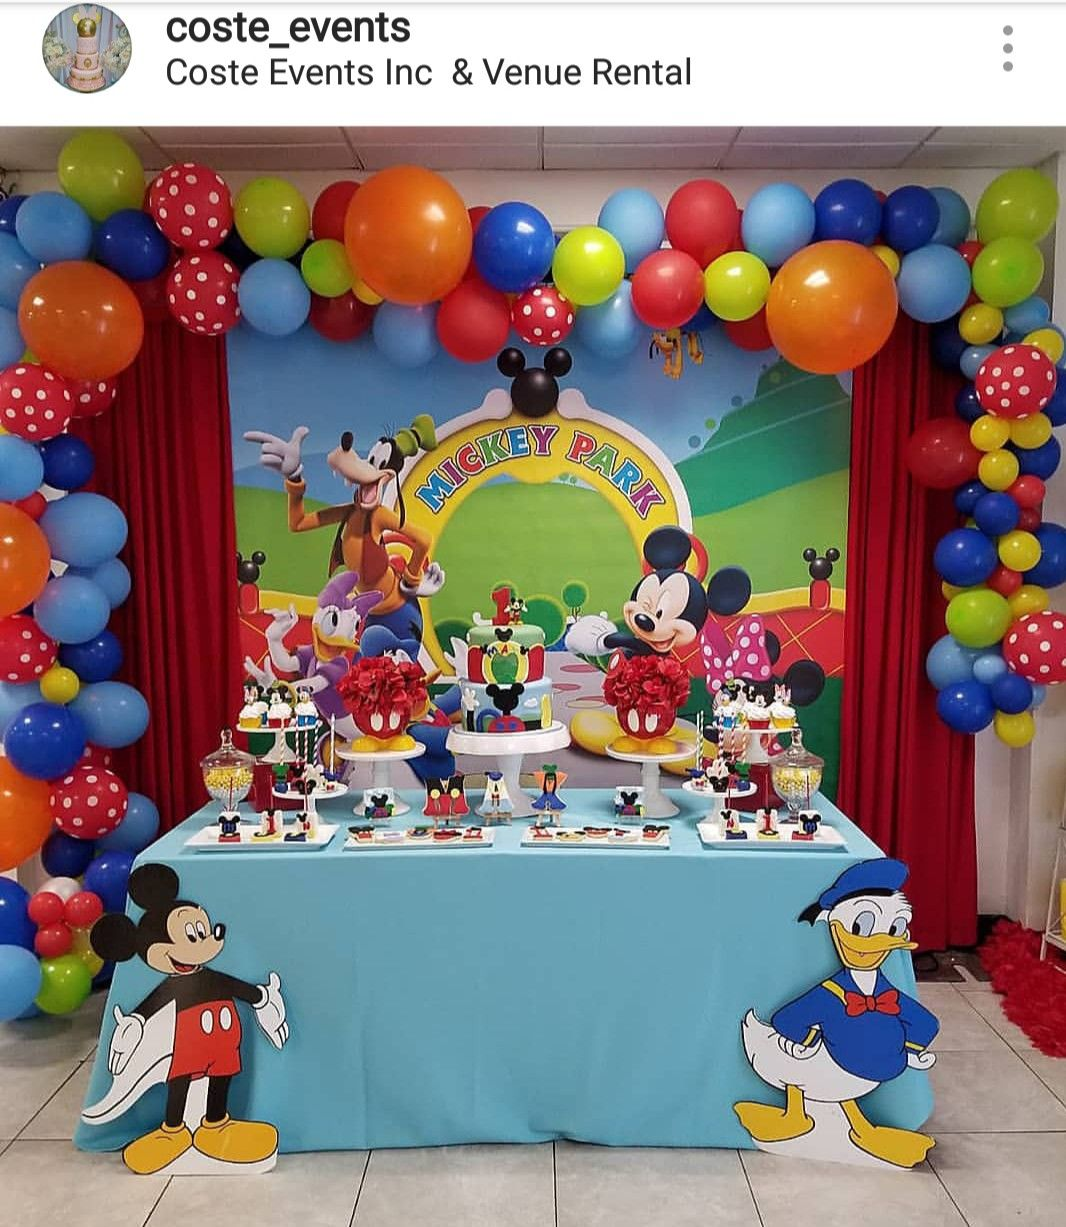 390 Mickey Mouse Birthday Party Ideas In 2021 Mickey Mouse Birthday Party Mickey Mouse Birthday Mickey Party